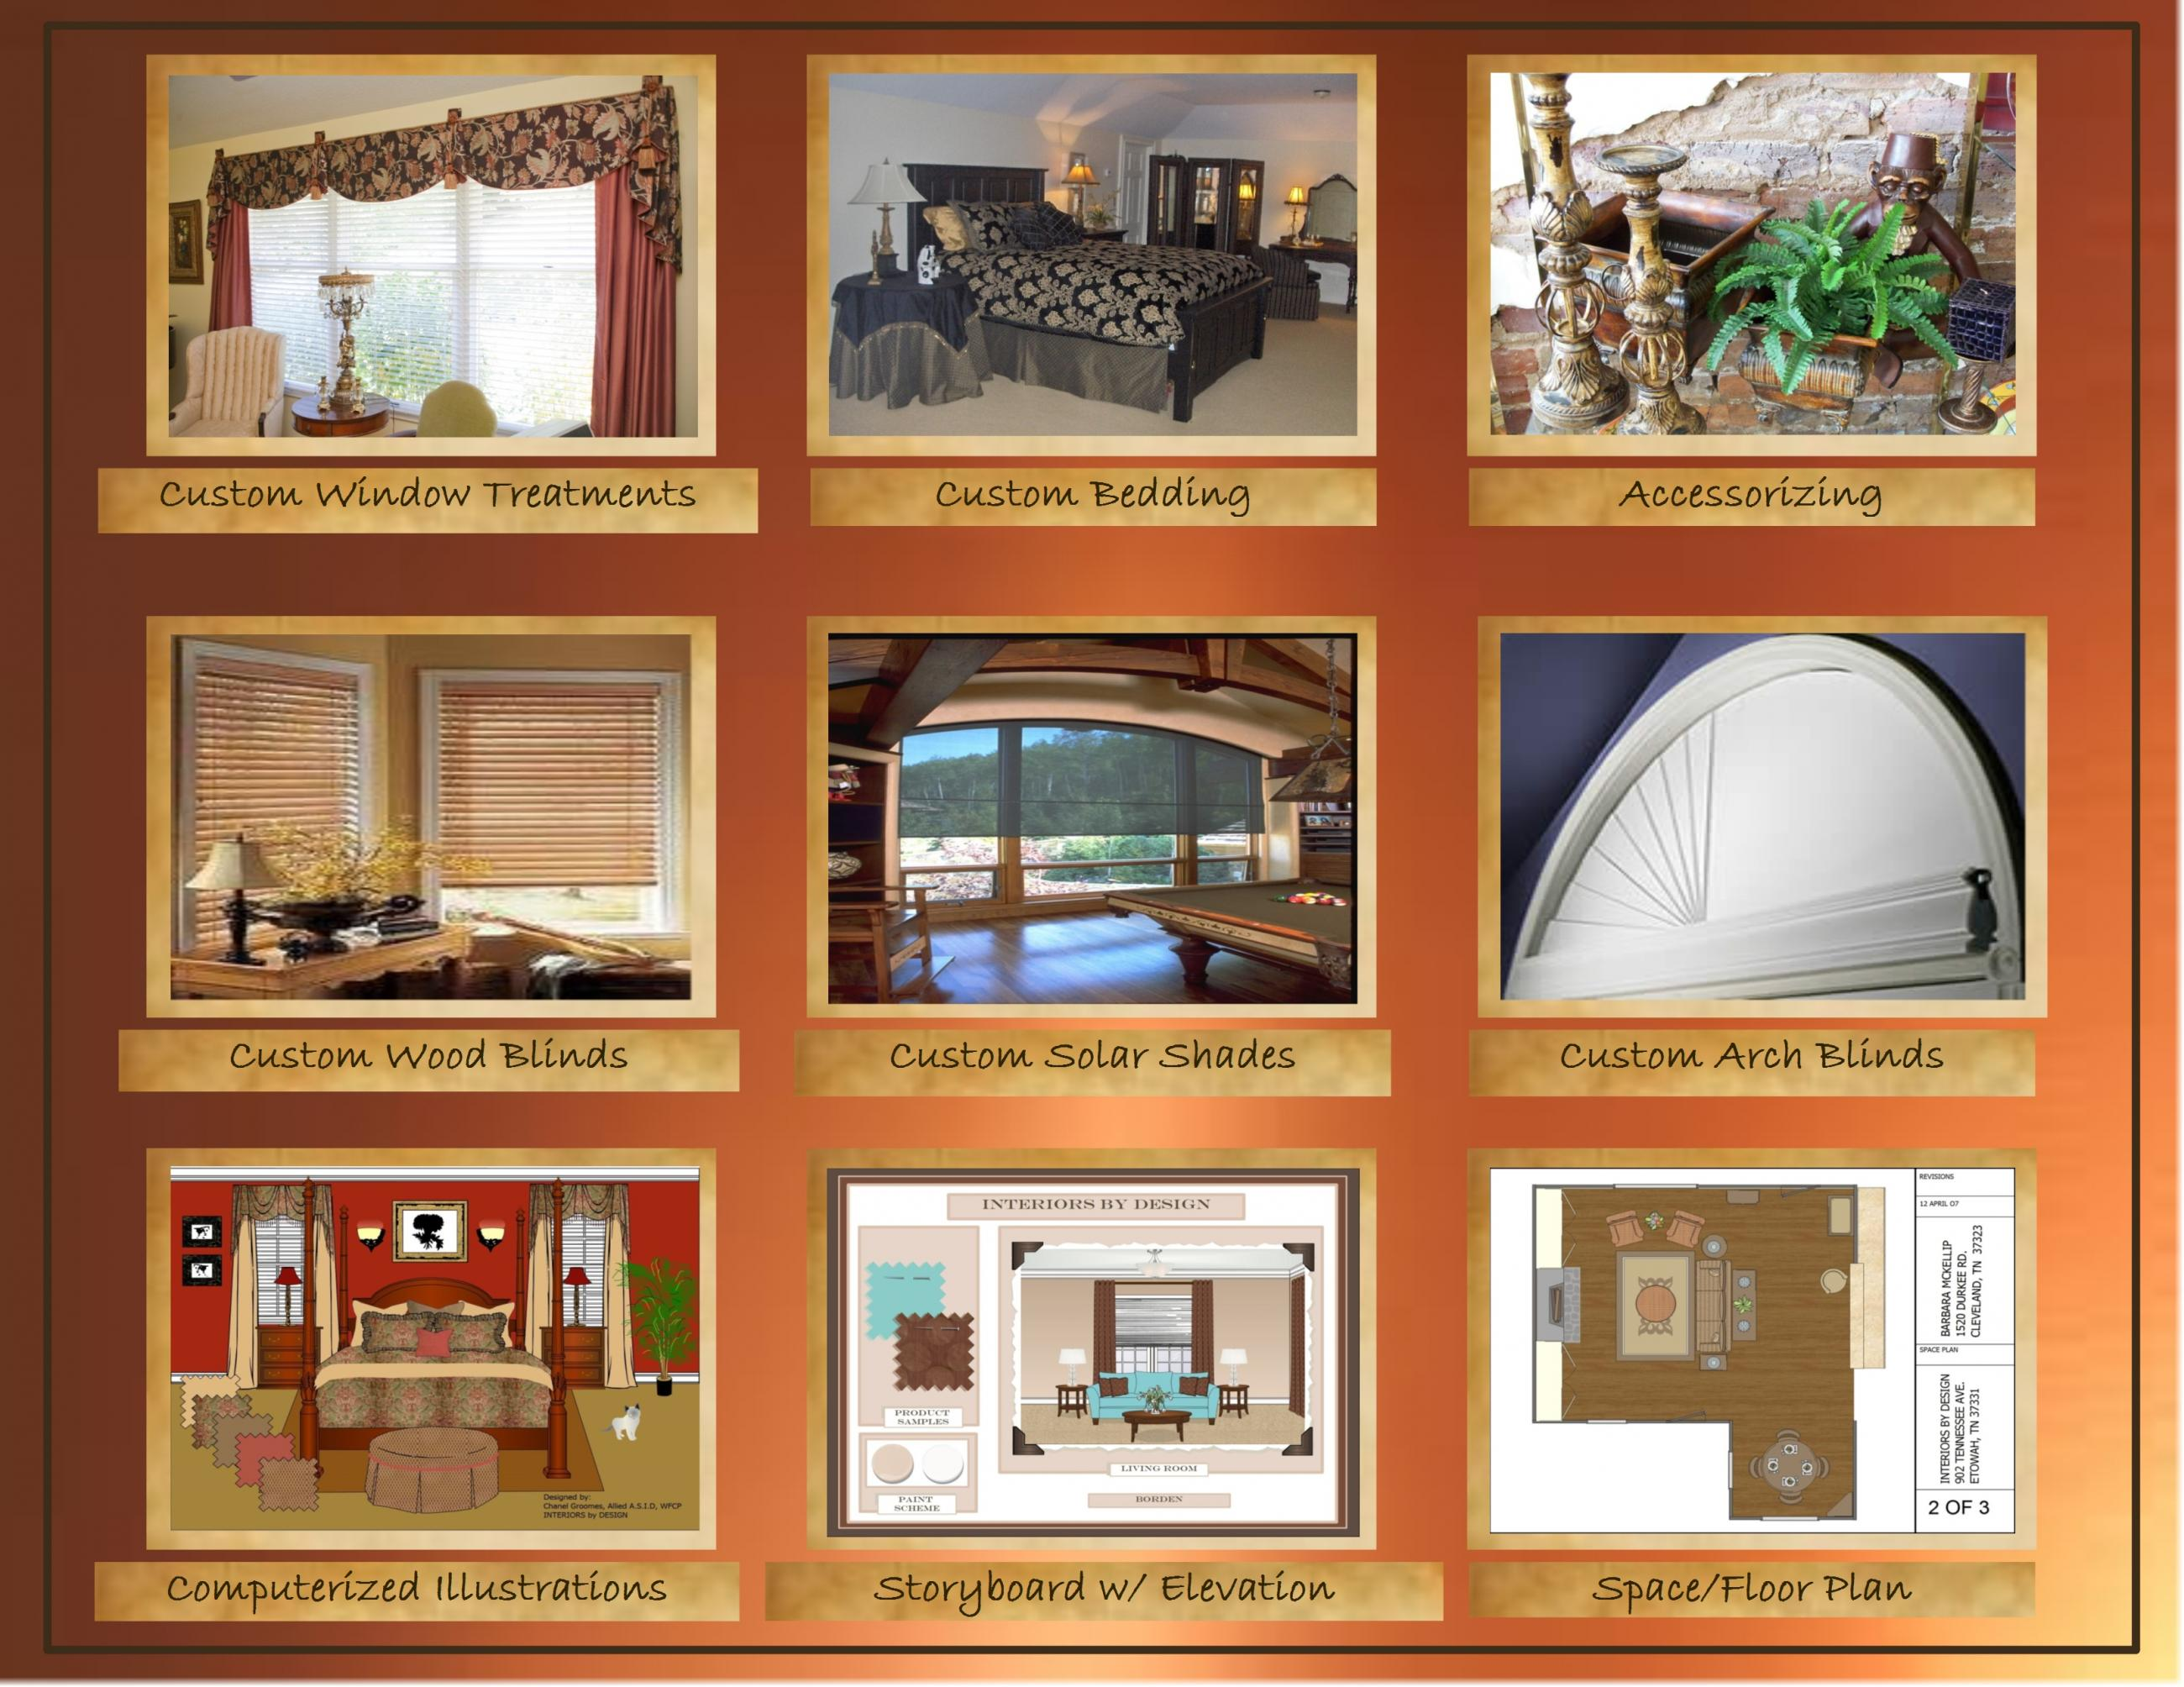 design services, interior design, interior, window treatments, curtains, fabric, bedding, accessories, blinds, arch window, space plan, floor plan, elevation